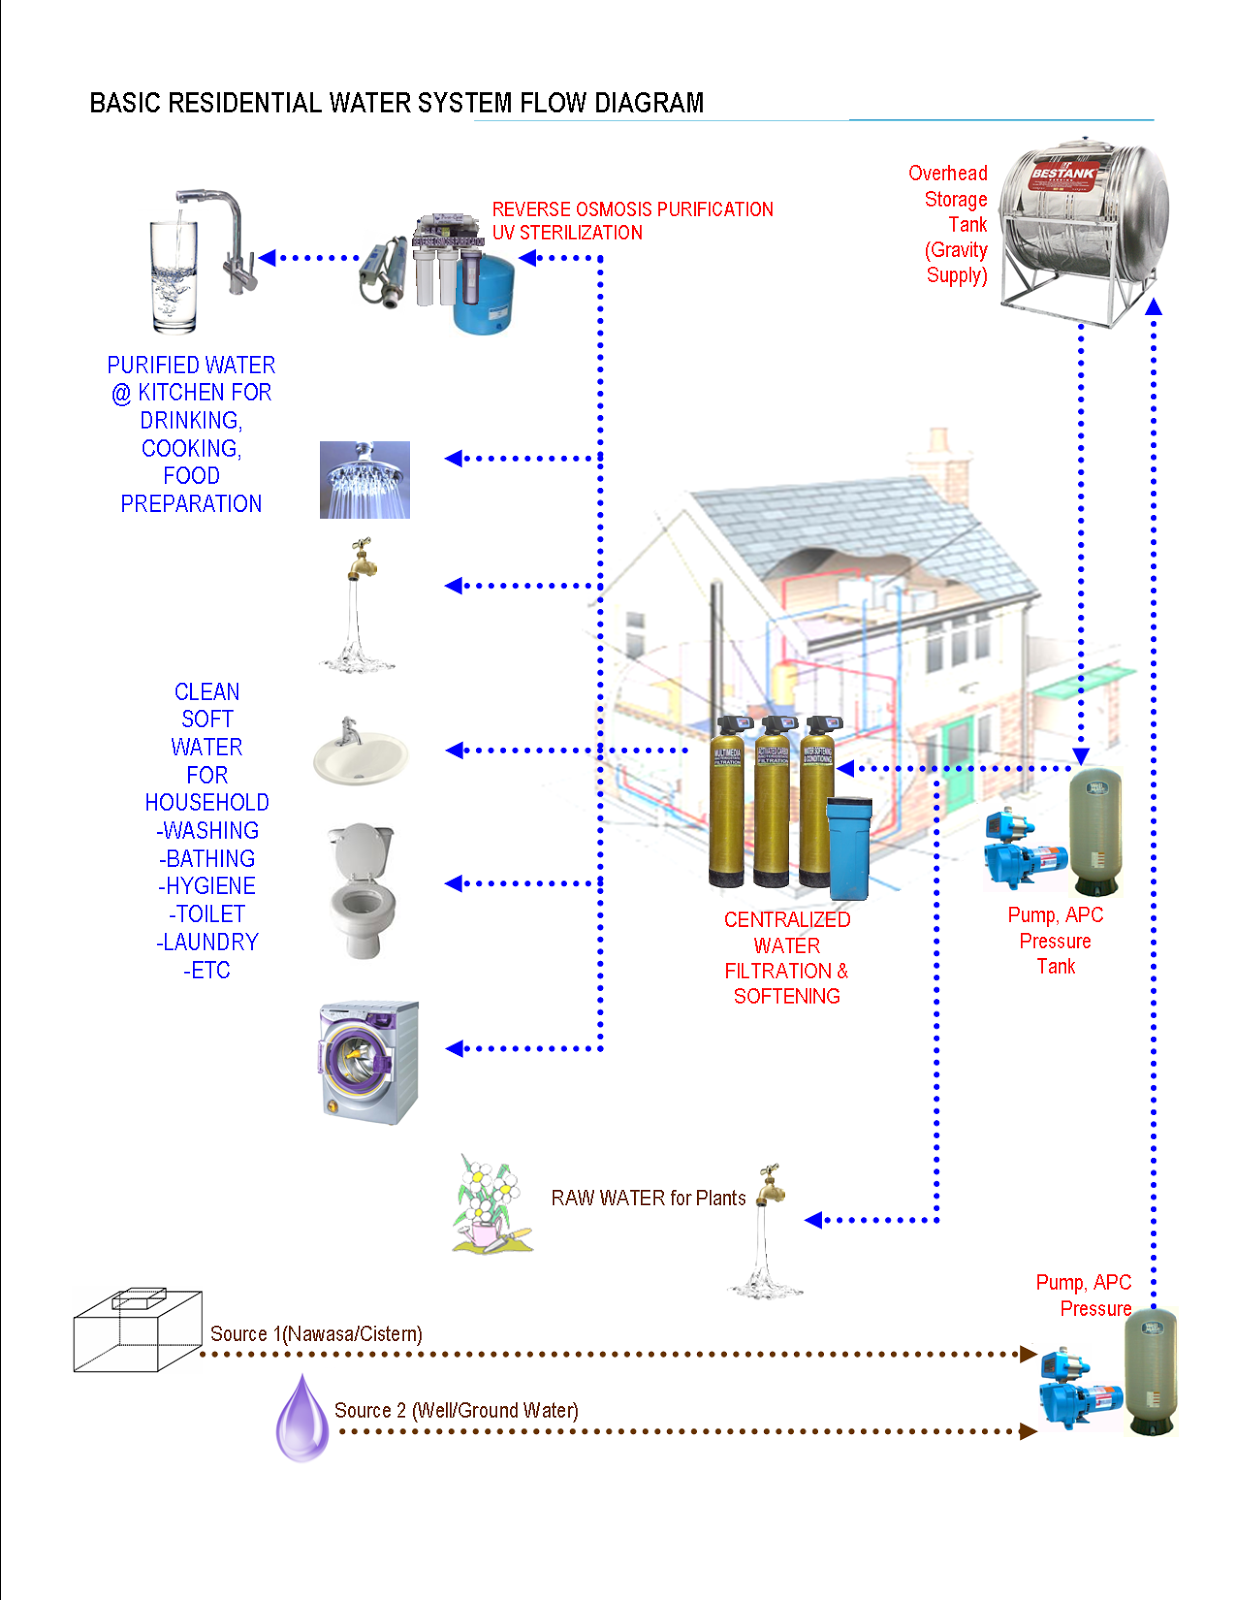 basic residential water systems flow diagram centralized water filtration softening system delivers purified water at kitchen for drinking cooking  [ 1236 x 1600 Pixel ]